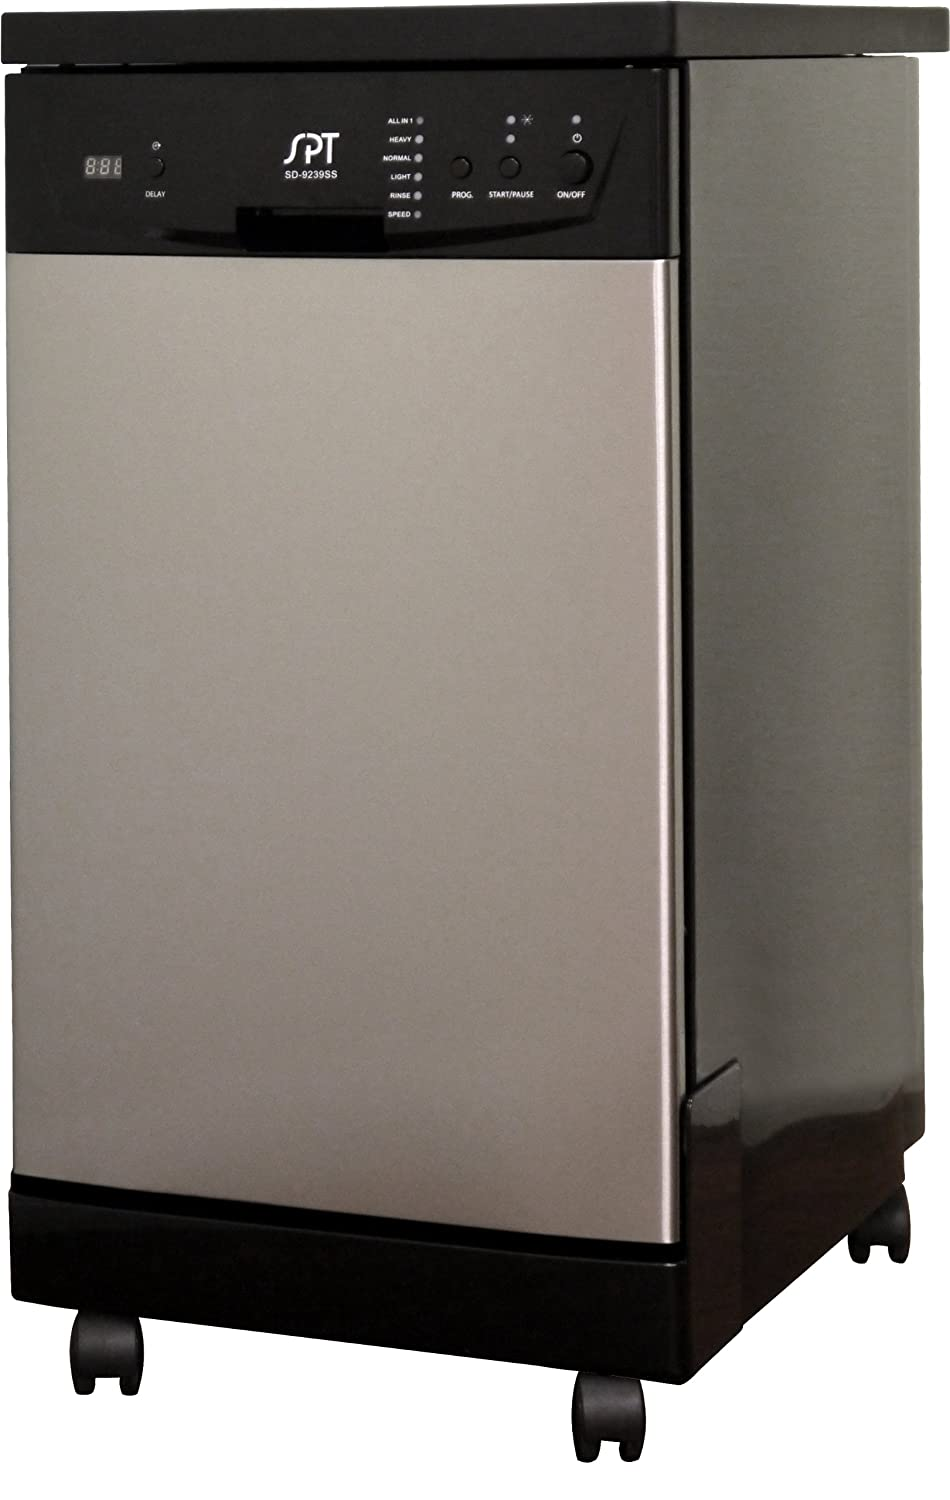 SPT SD-9241SS Energy Star Portable Dishwasher, 18-Inch, Stainless Steel Sunpentown